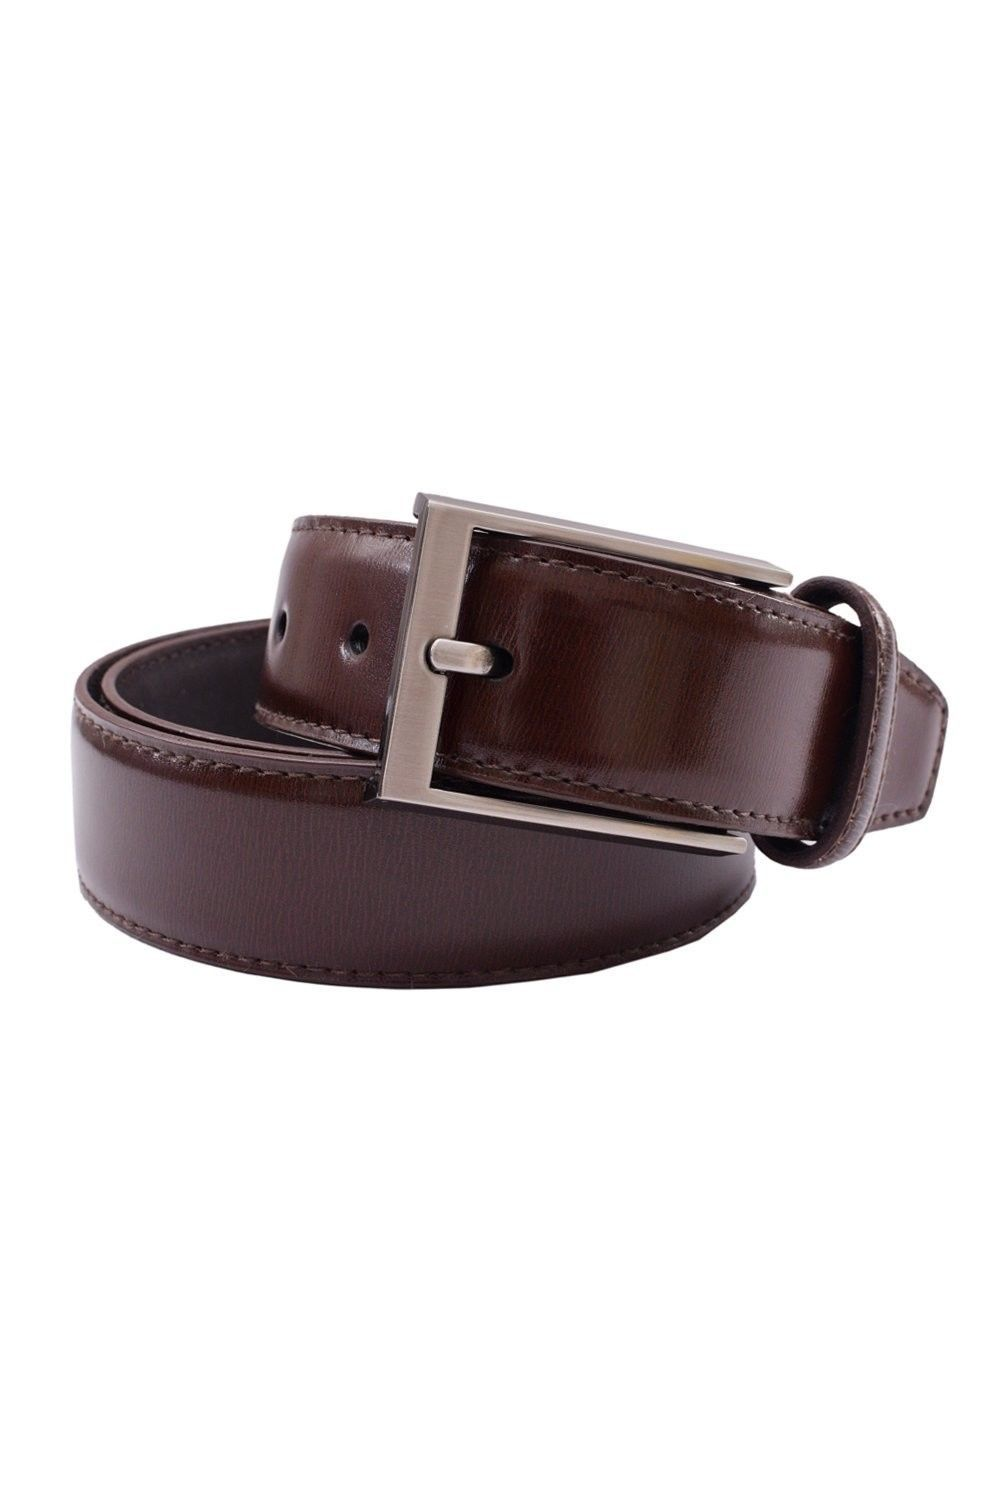 Genuine Leather Men/'s Belts Casual semi Formal wide Straps pin buckle 35 mm gift